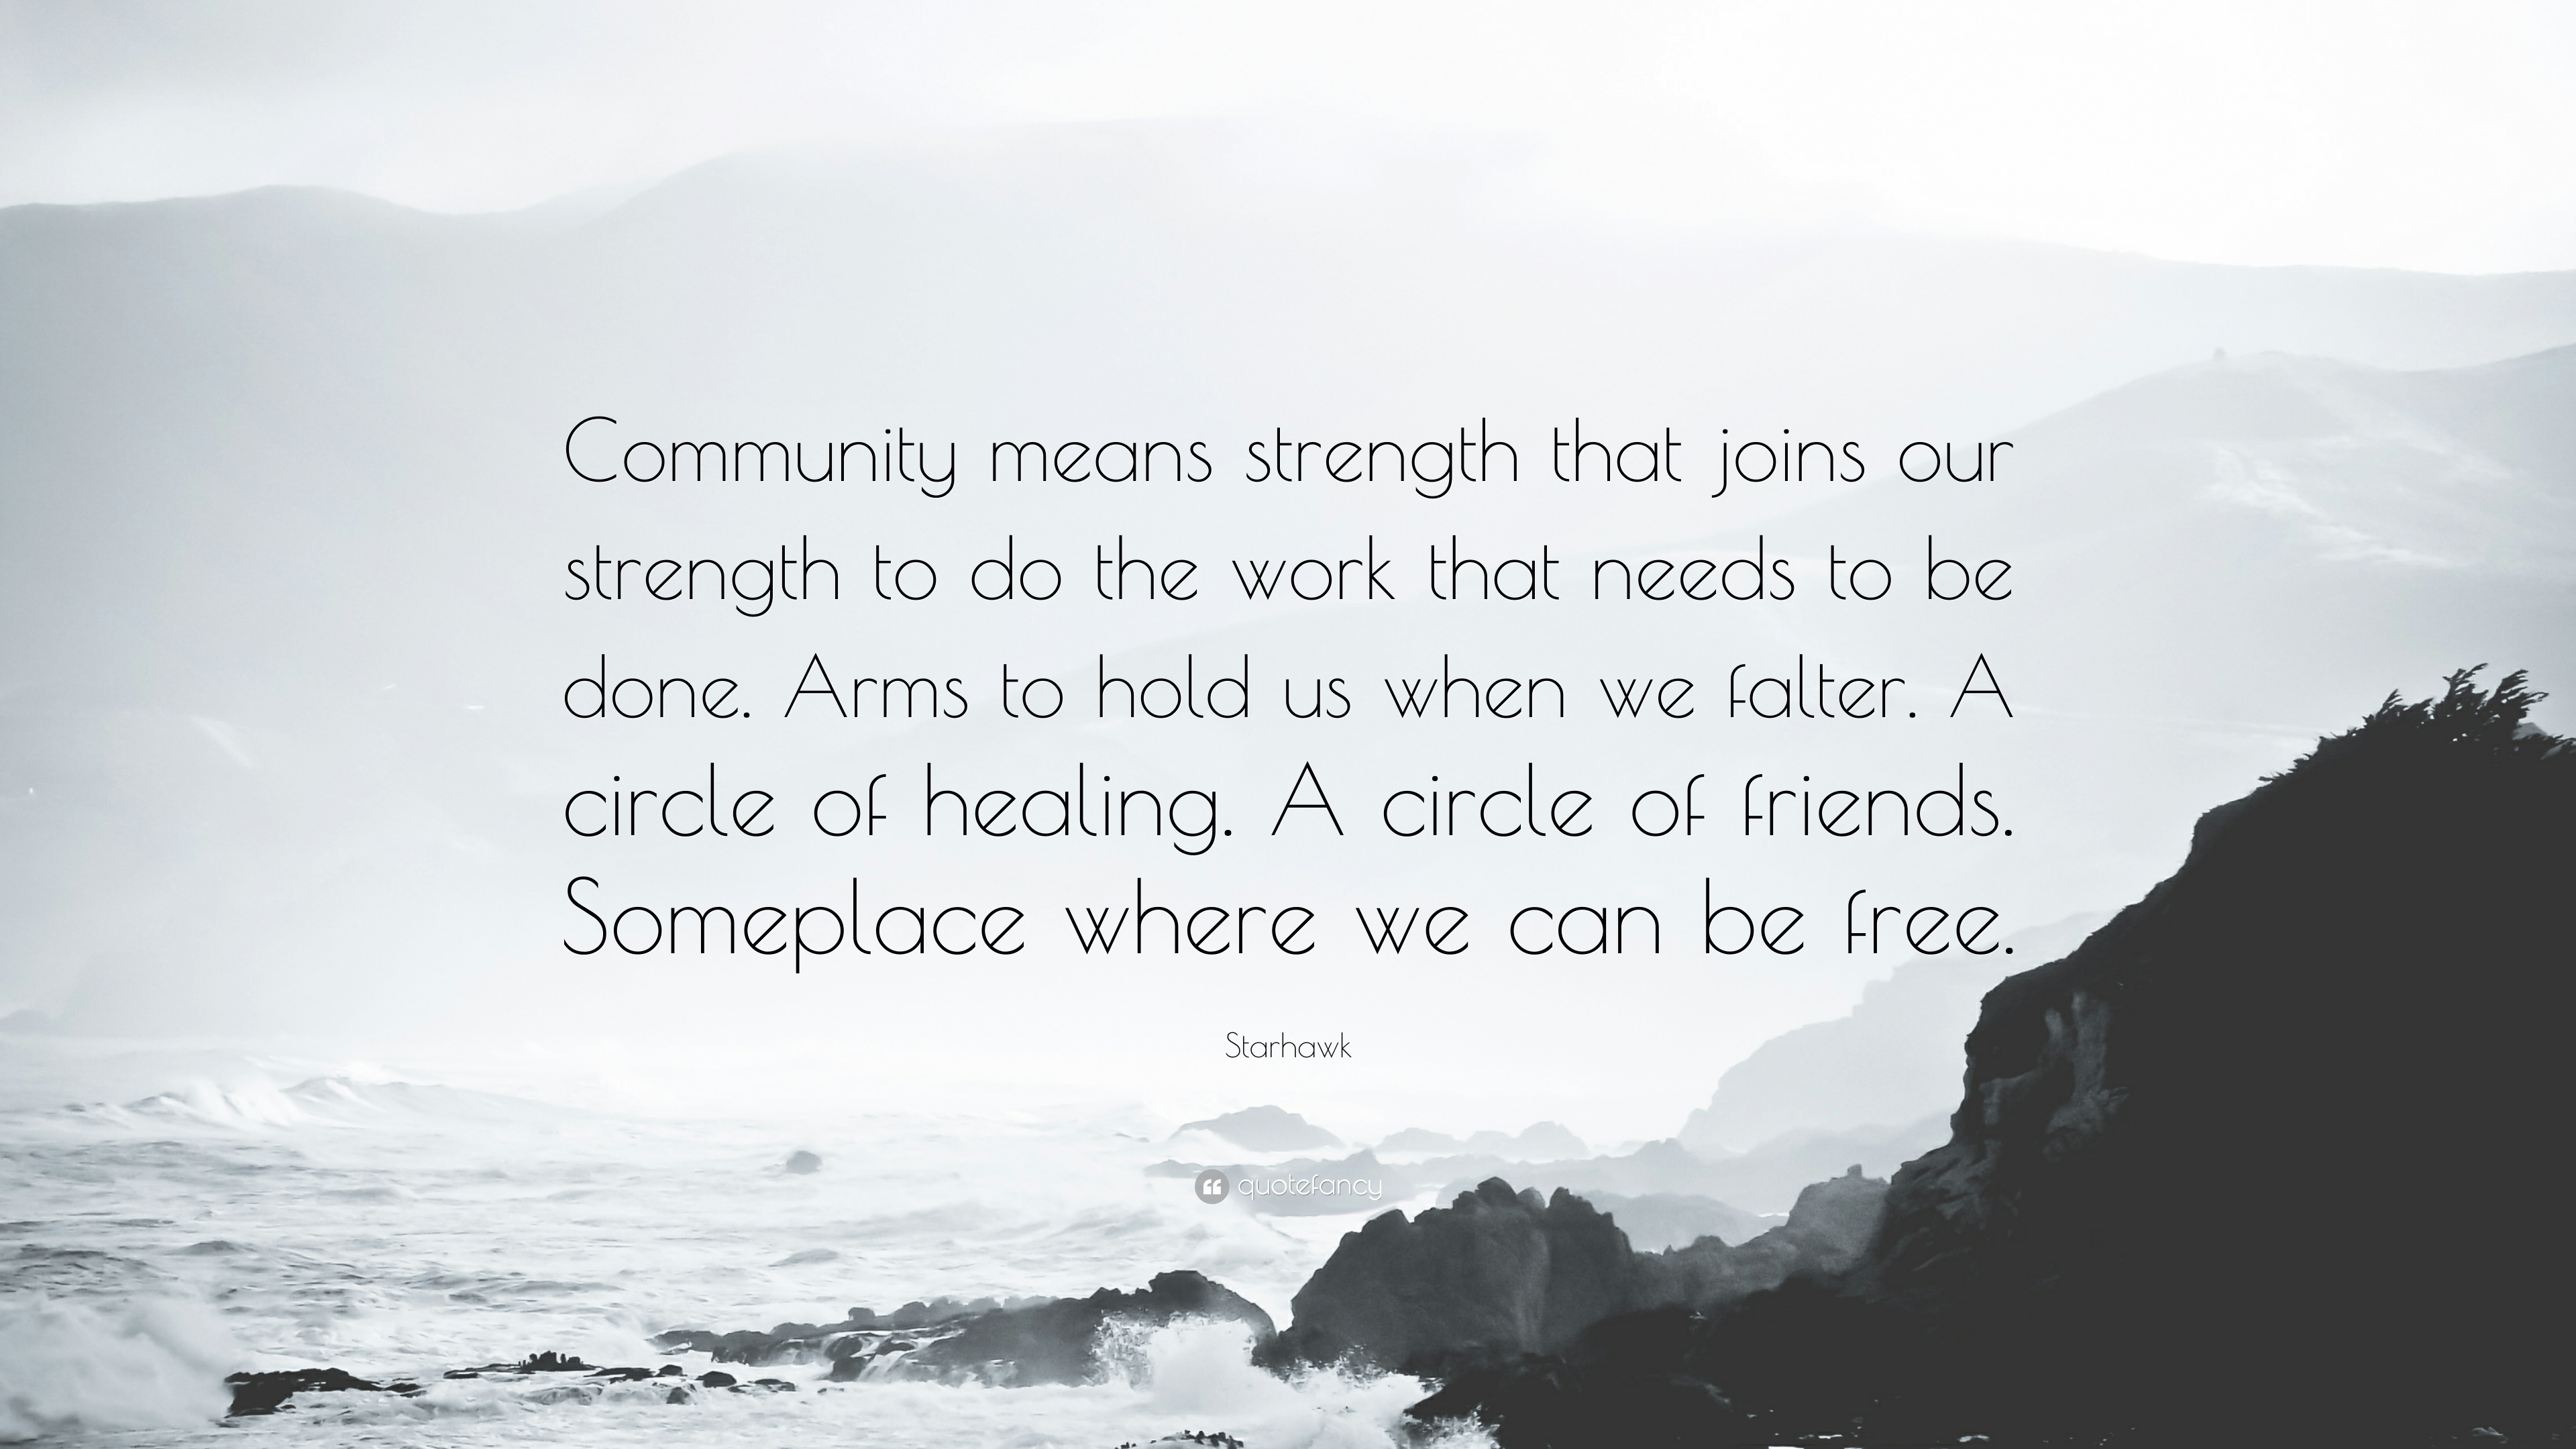 Quotes About Community | Starhawk Quote Community Means Strength That Joins Our Strength To